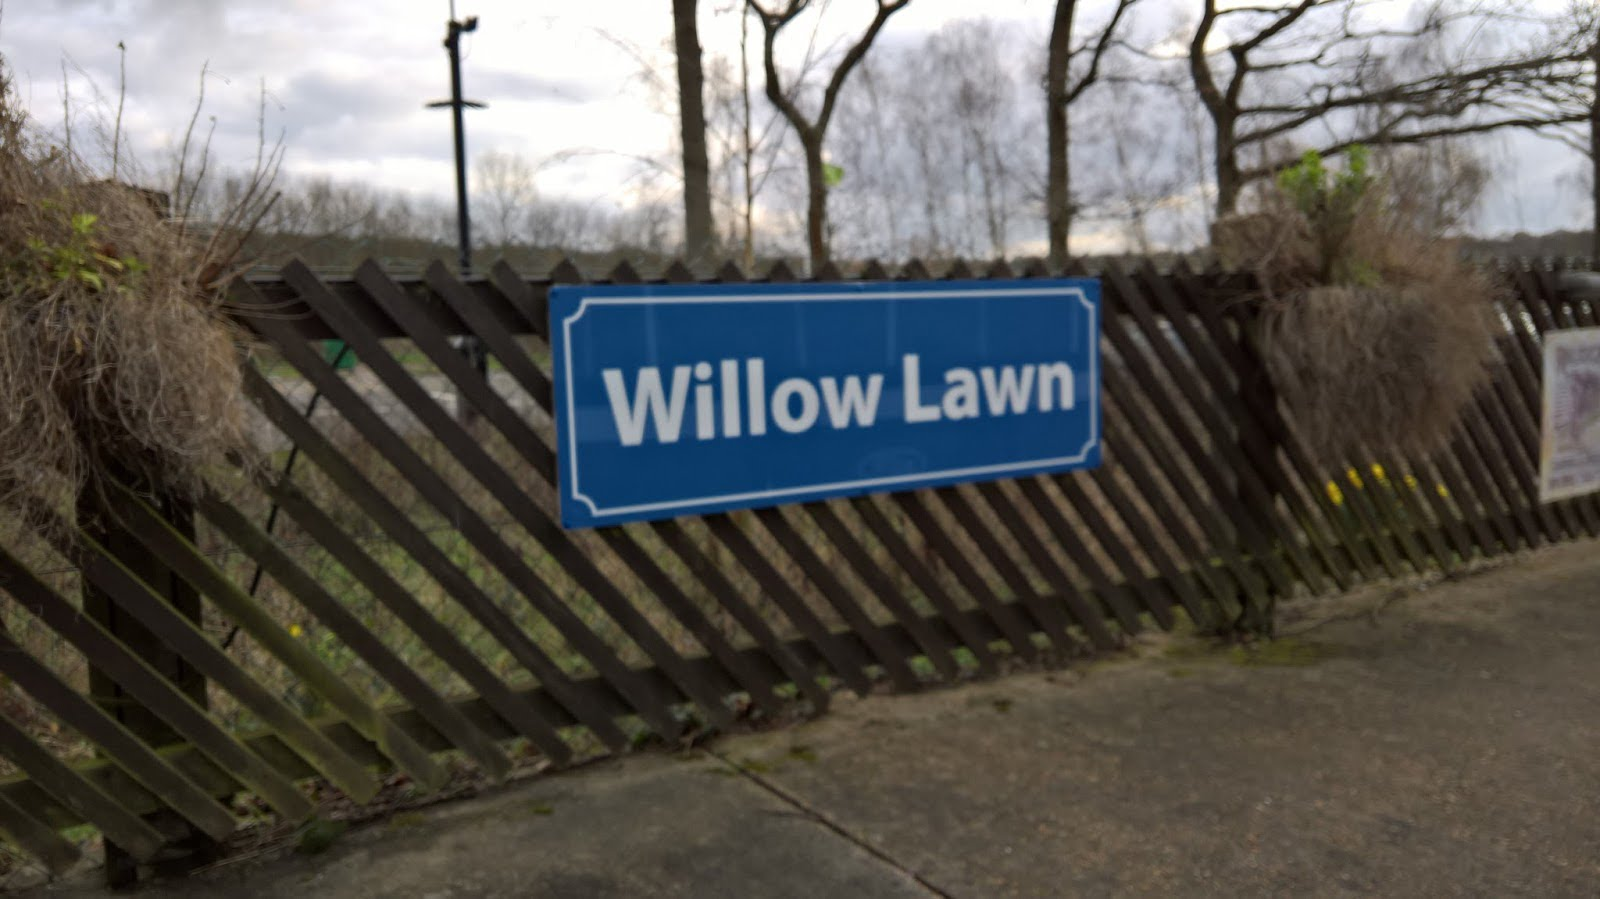 Willow Lawn Station on the Ruislip Lido Railway